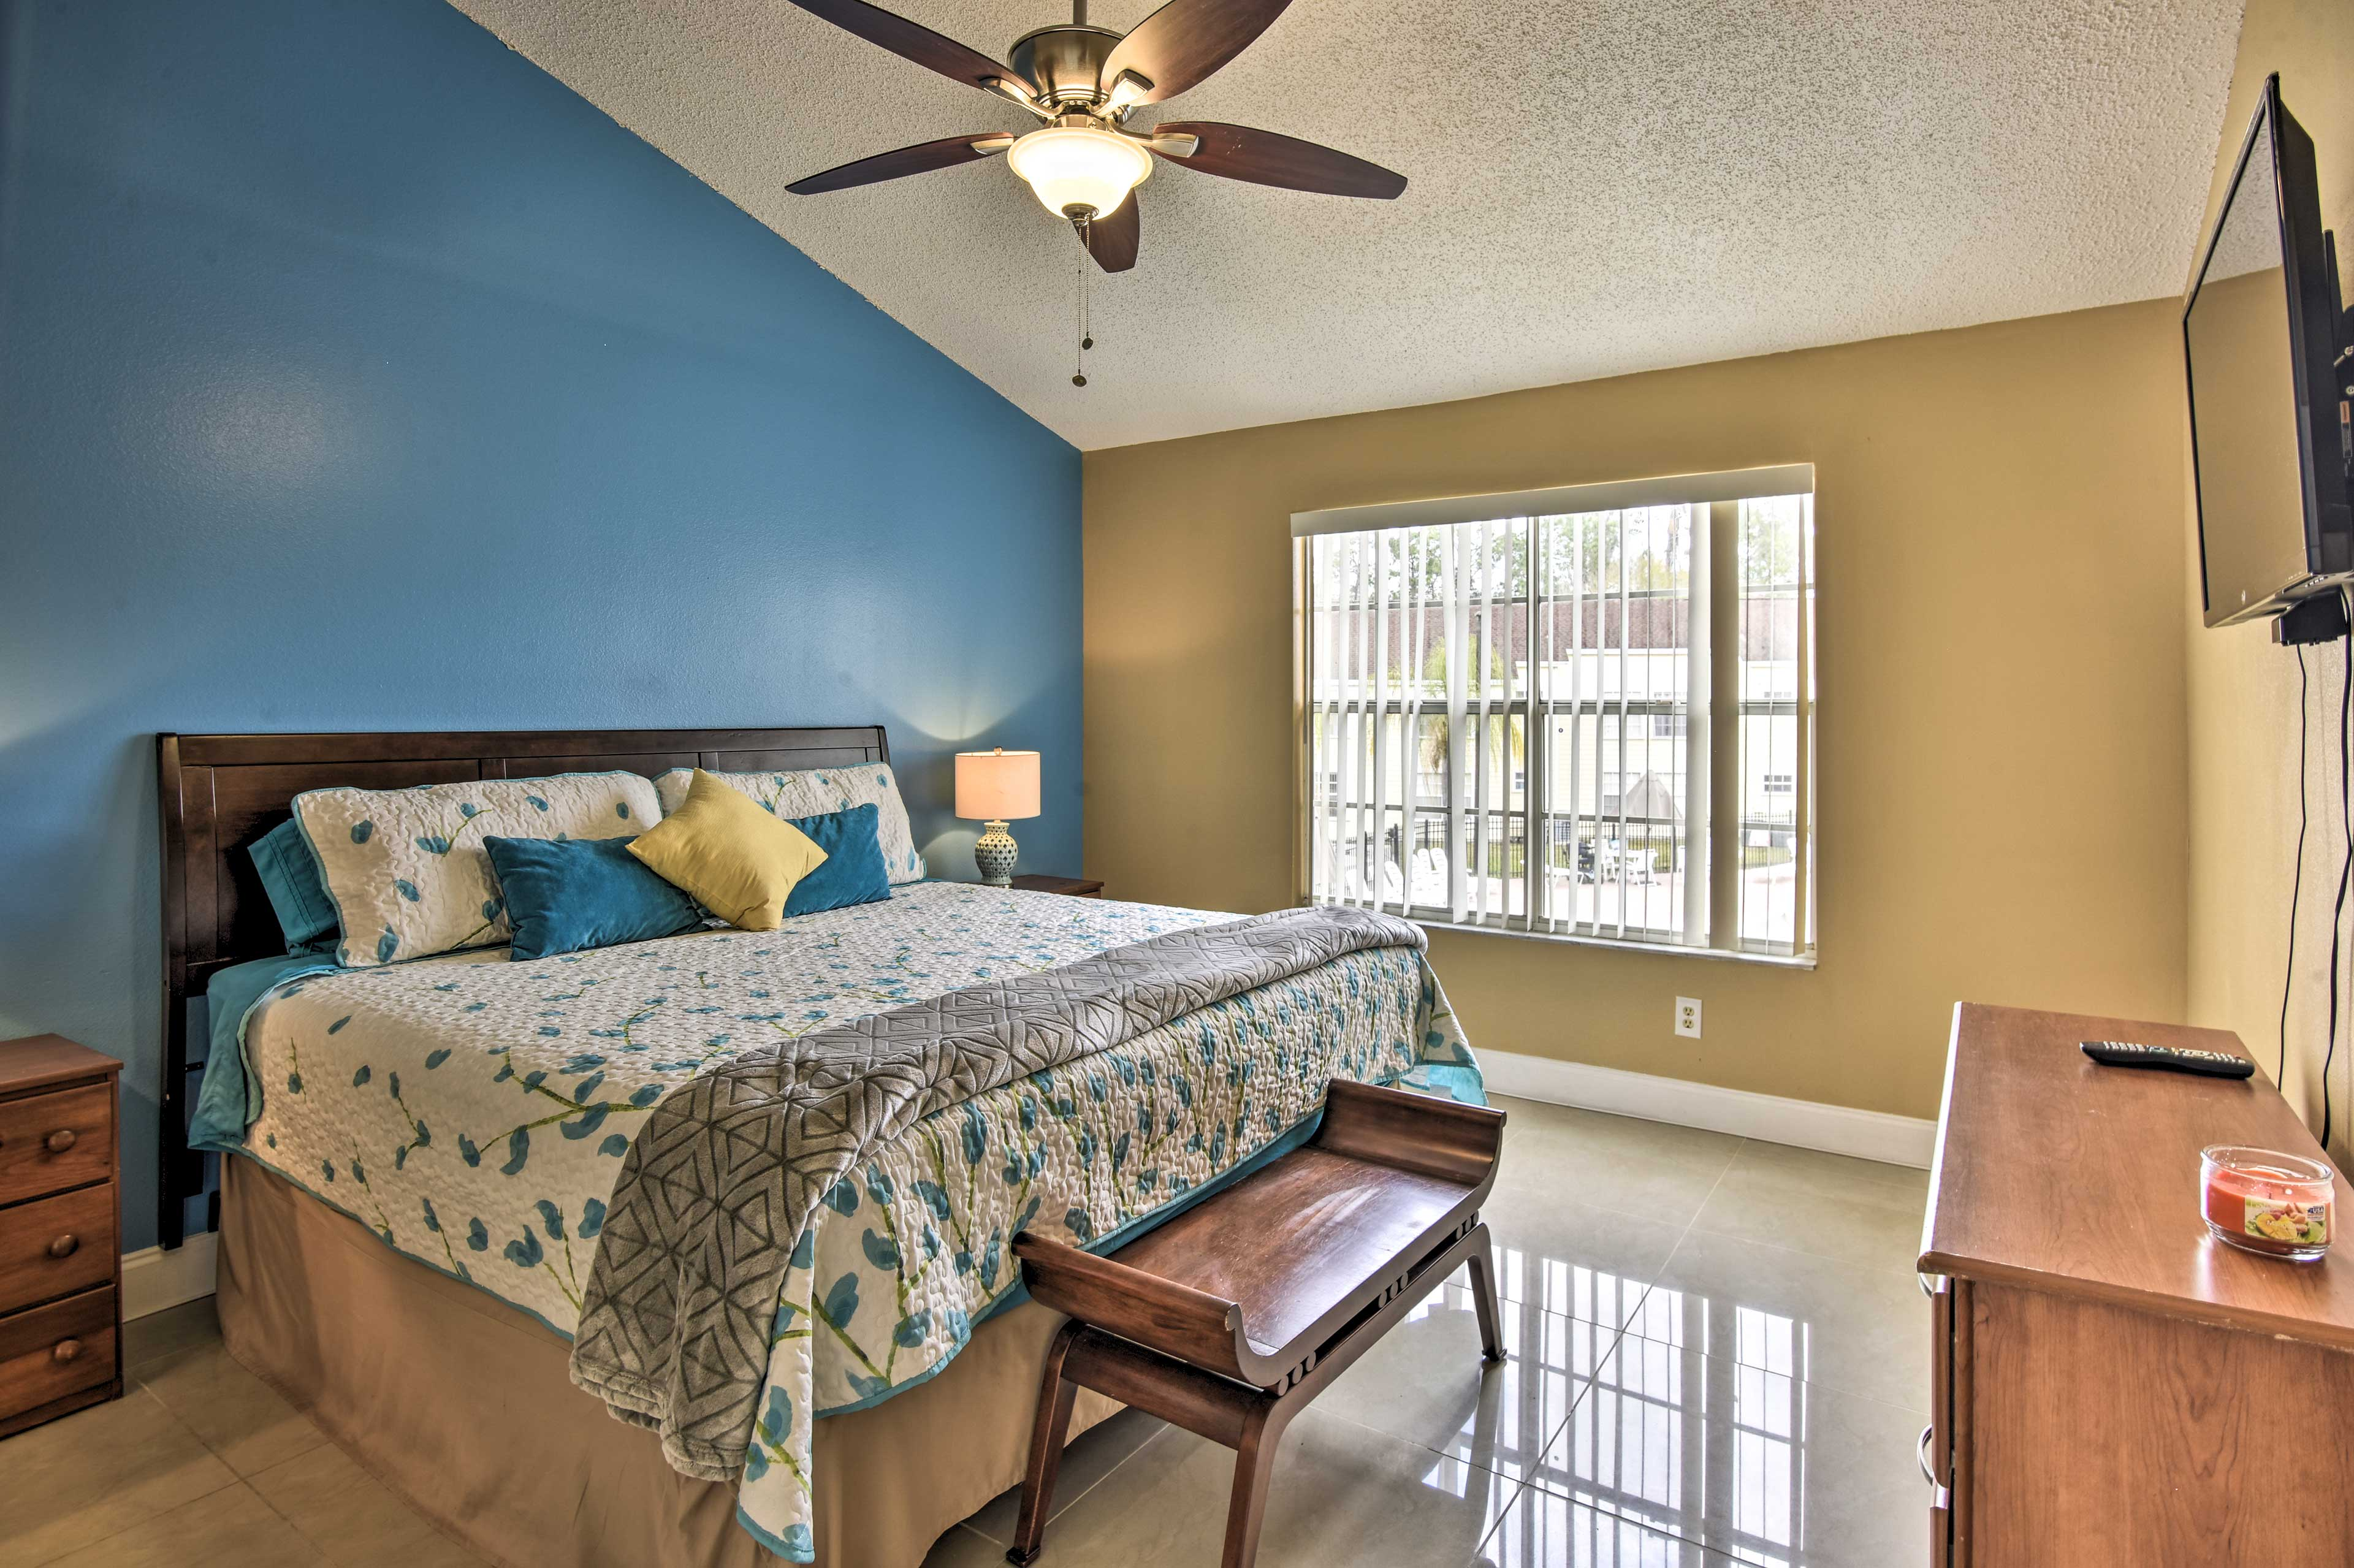 This property sleeps 6 guests throughout 3 bedrooms.